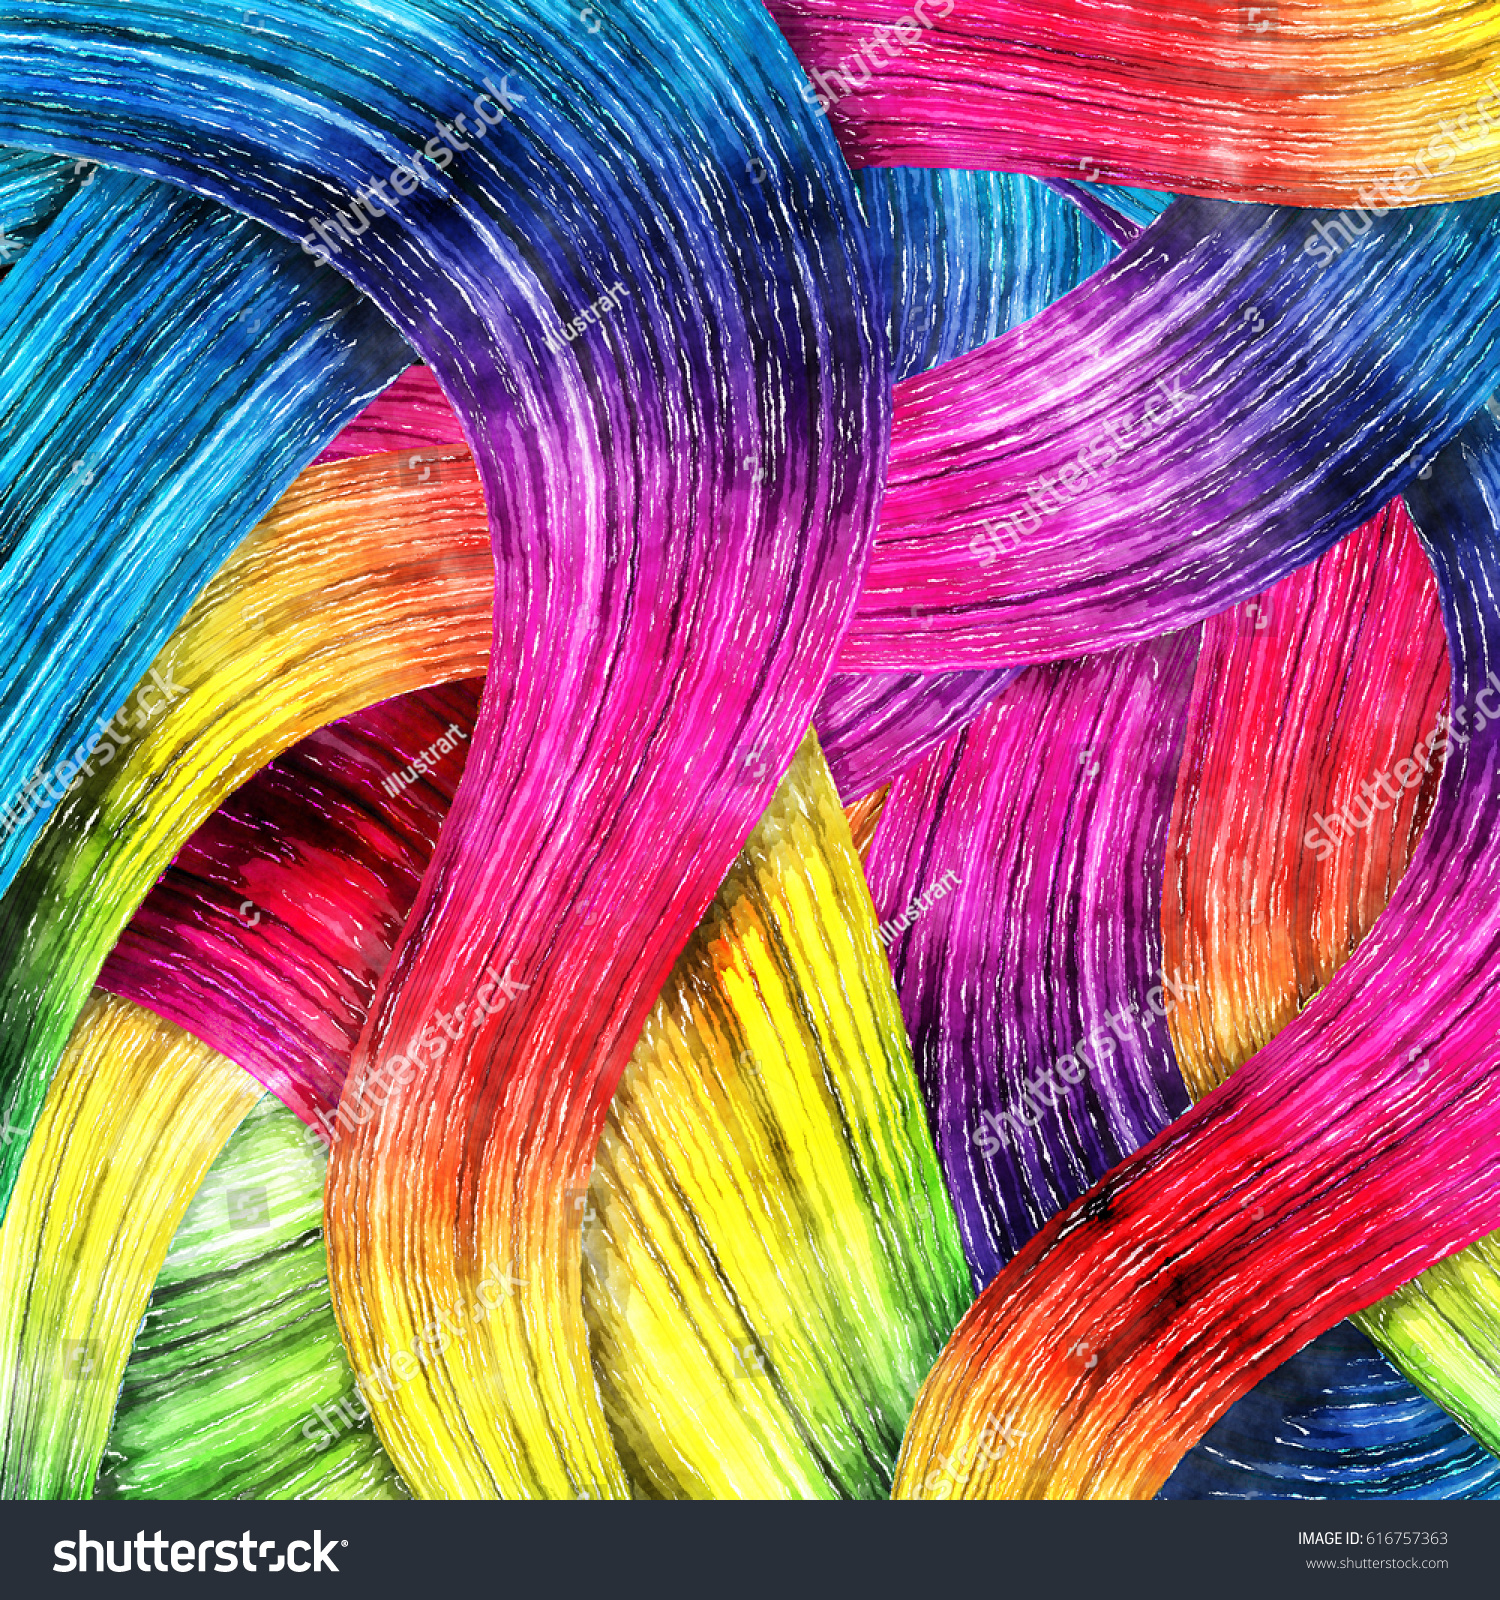 Pics photos 3d colorful abstract background design - 3d Colorful Abstract Watercolor Background Design